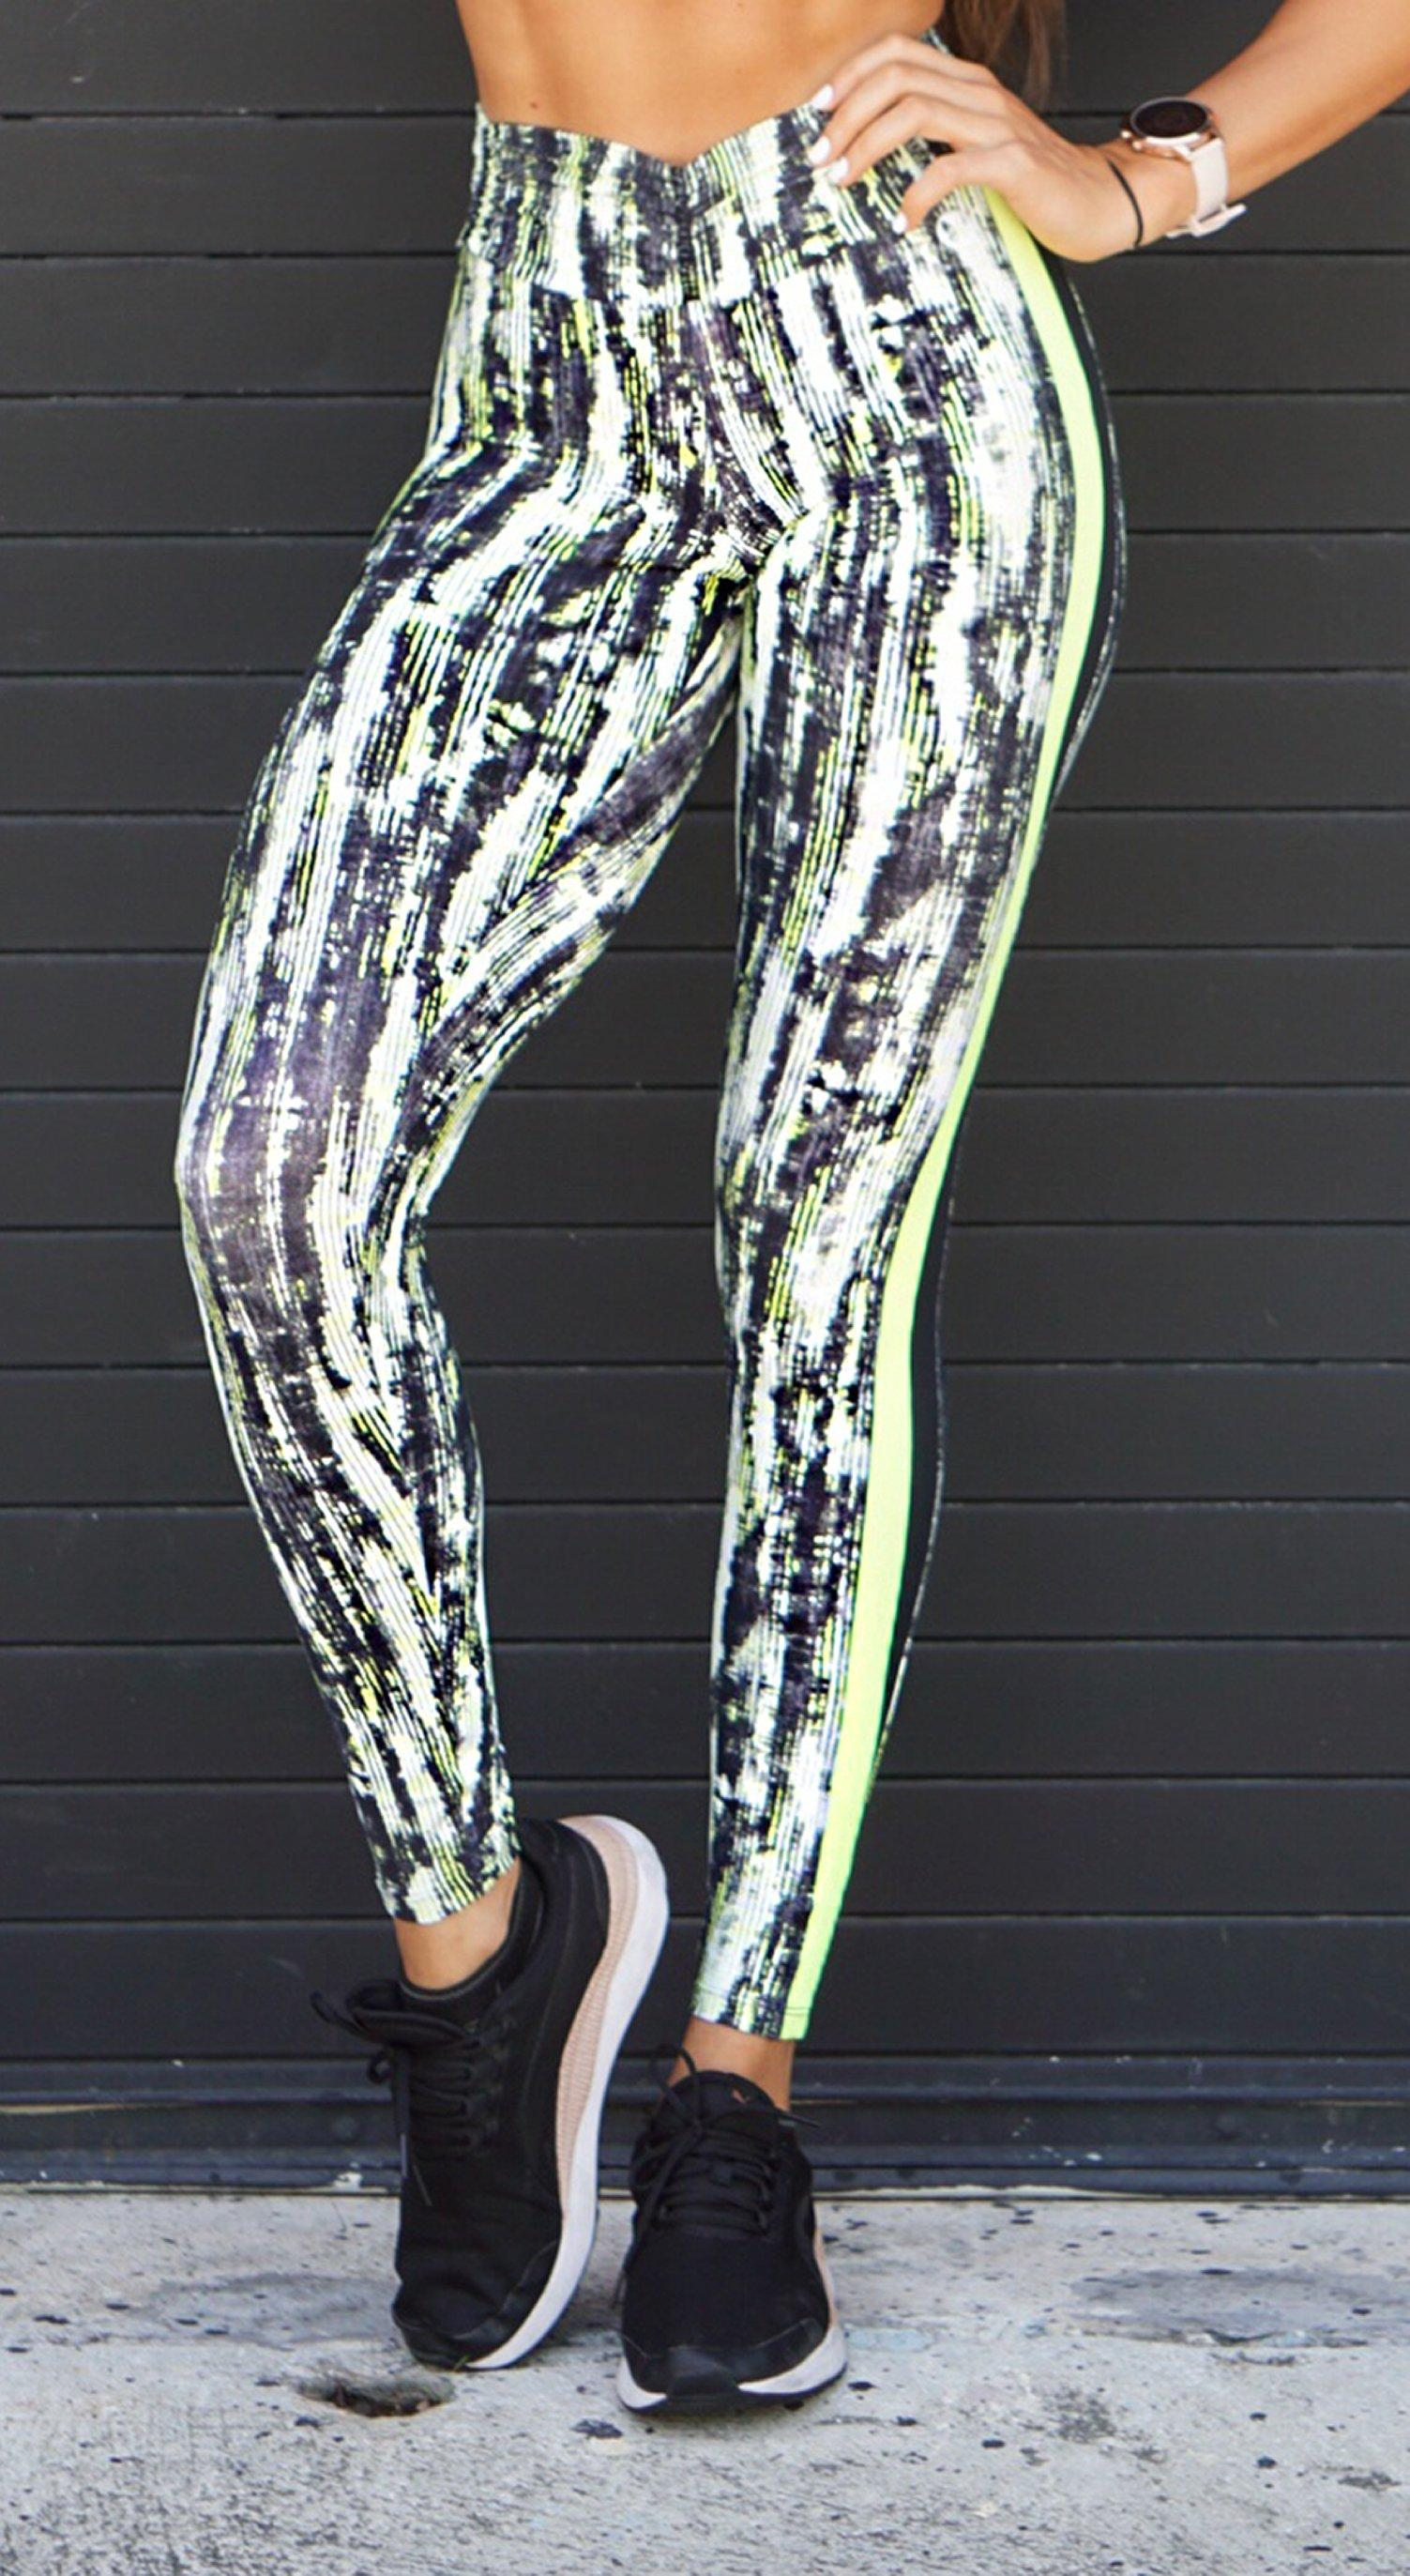 Brazilian Workout Legging - Booty Up Side Stripes Neon Power Print